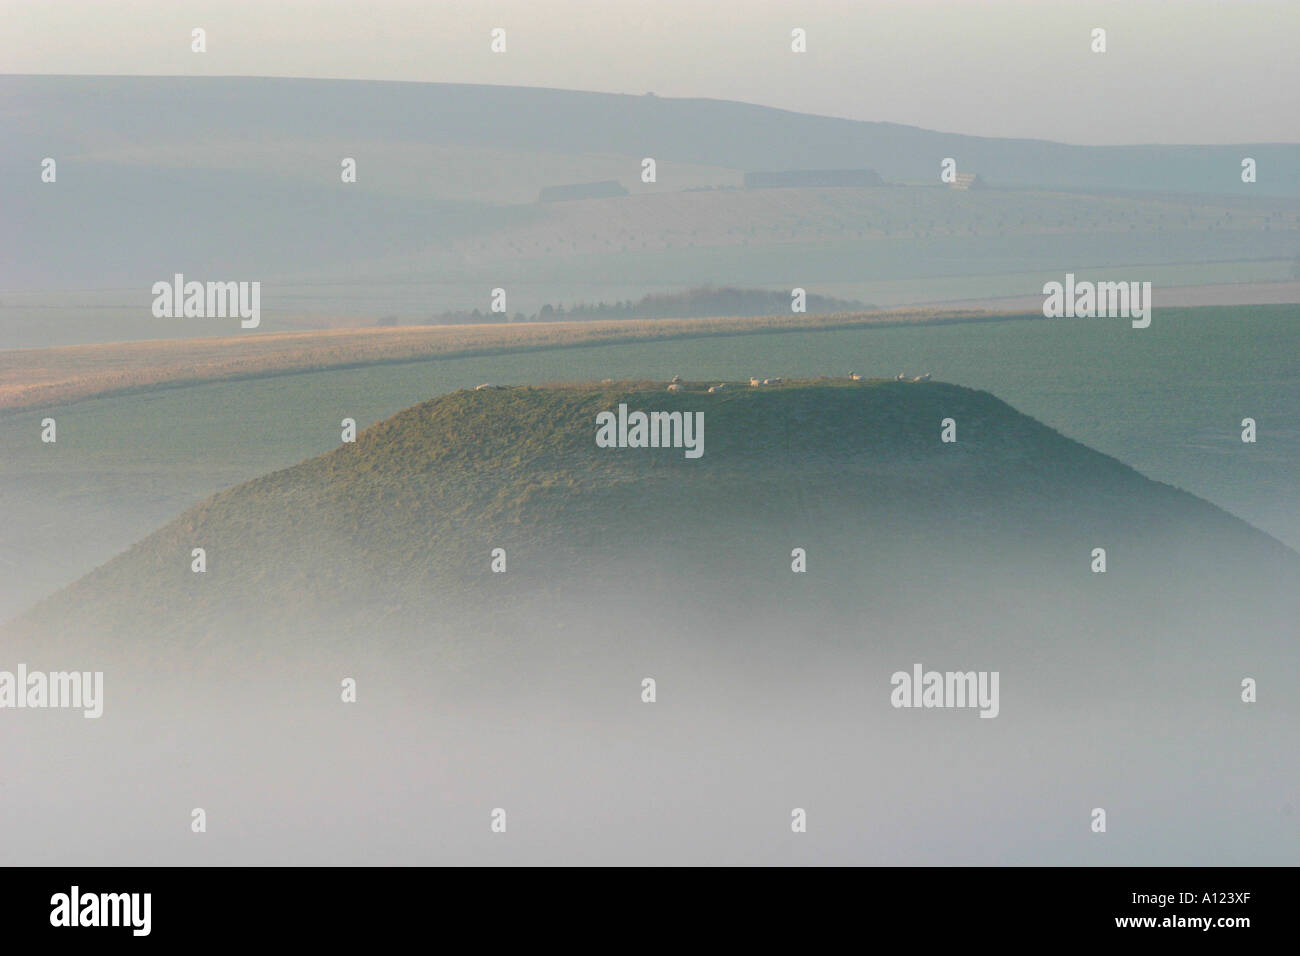 Silbury Hill mysterious Neolithic monument in Wiltshire shrouded in early morning mists - Stock Image